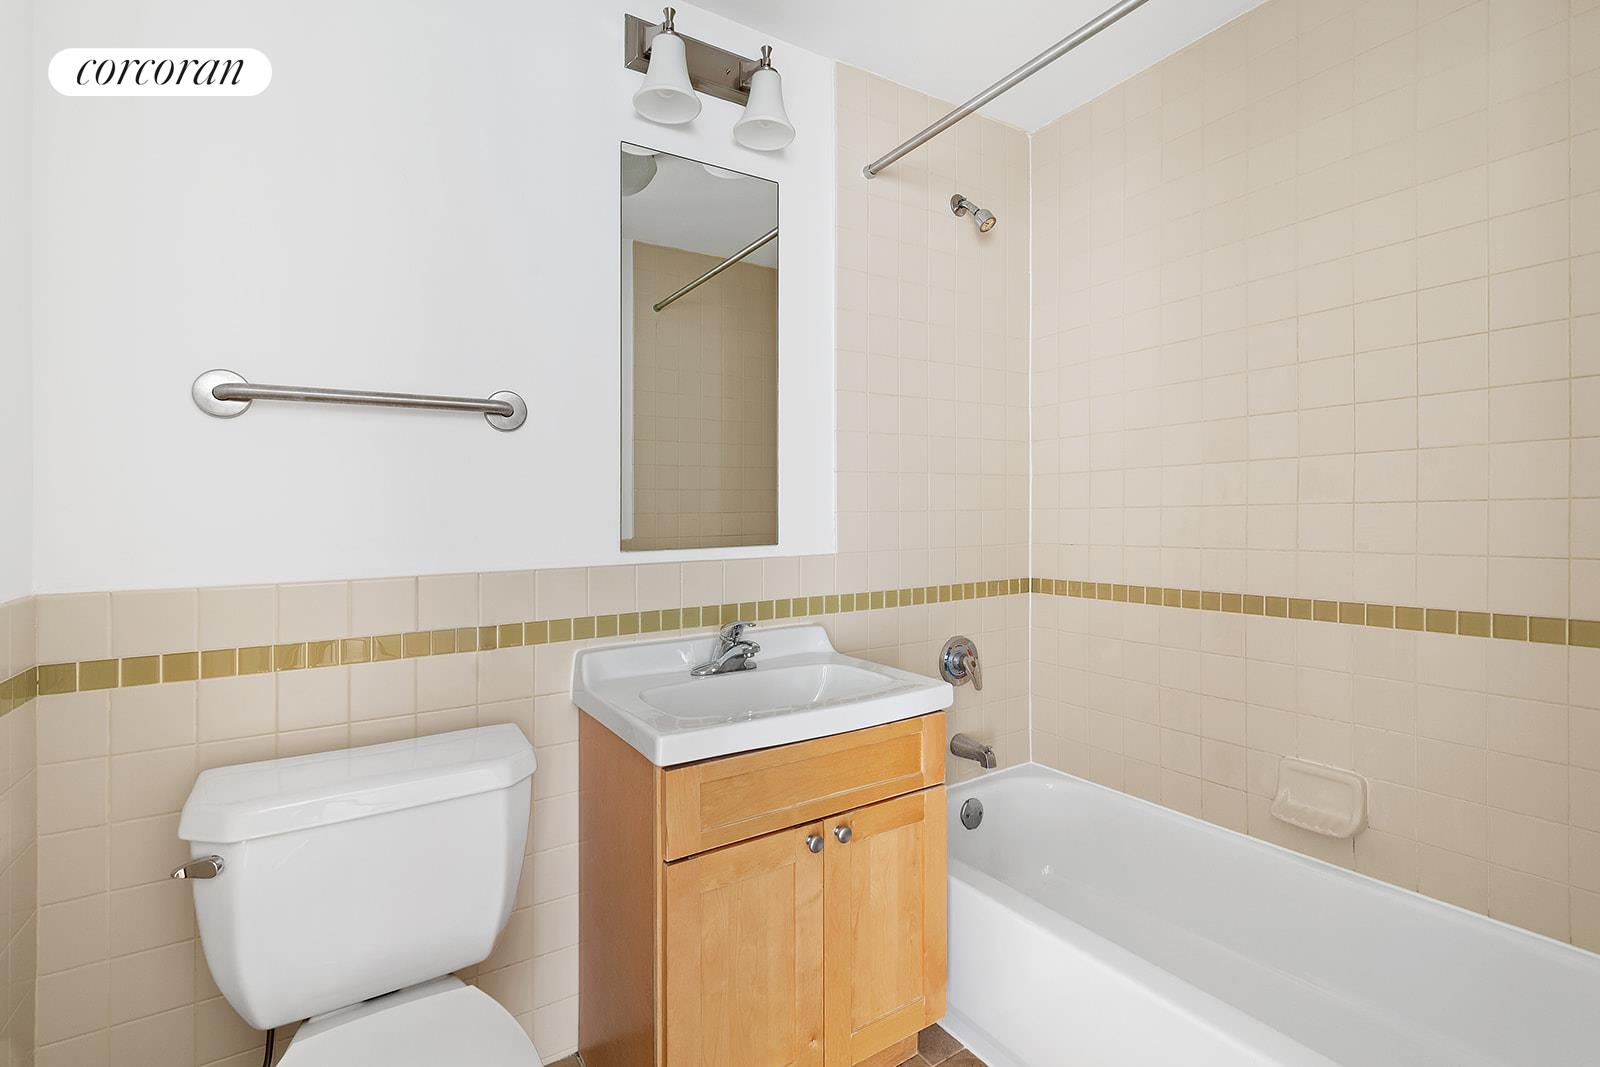 Apartment for sale at 71 Wolcott Street, Apt 206A